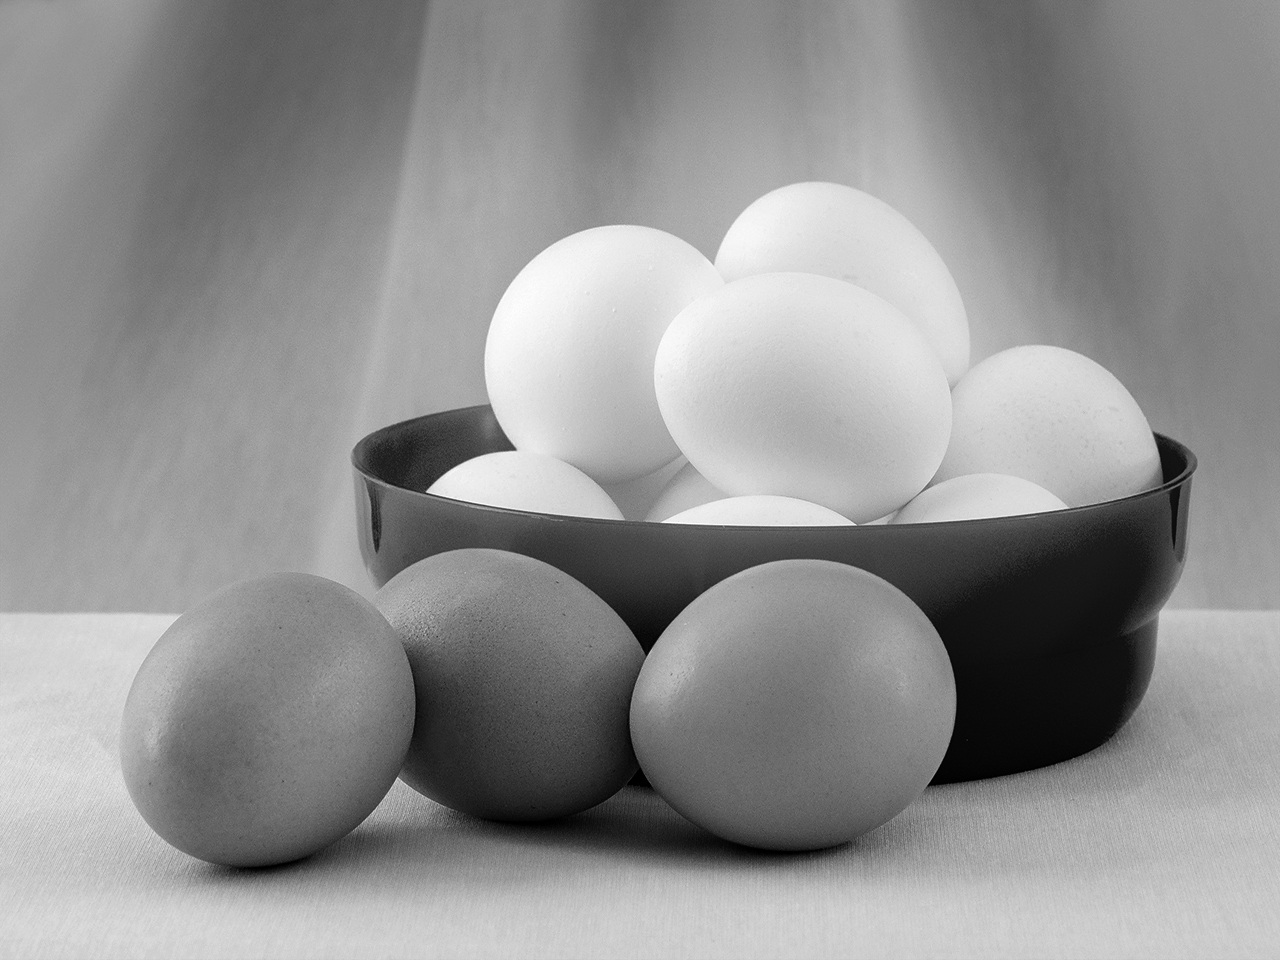 Brown and White Eggs - Margaret Boike - SPCC